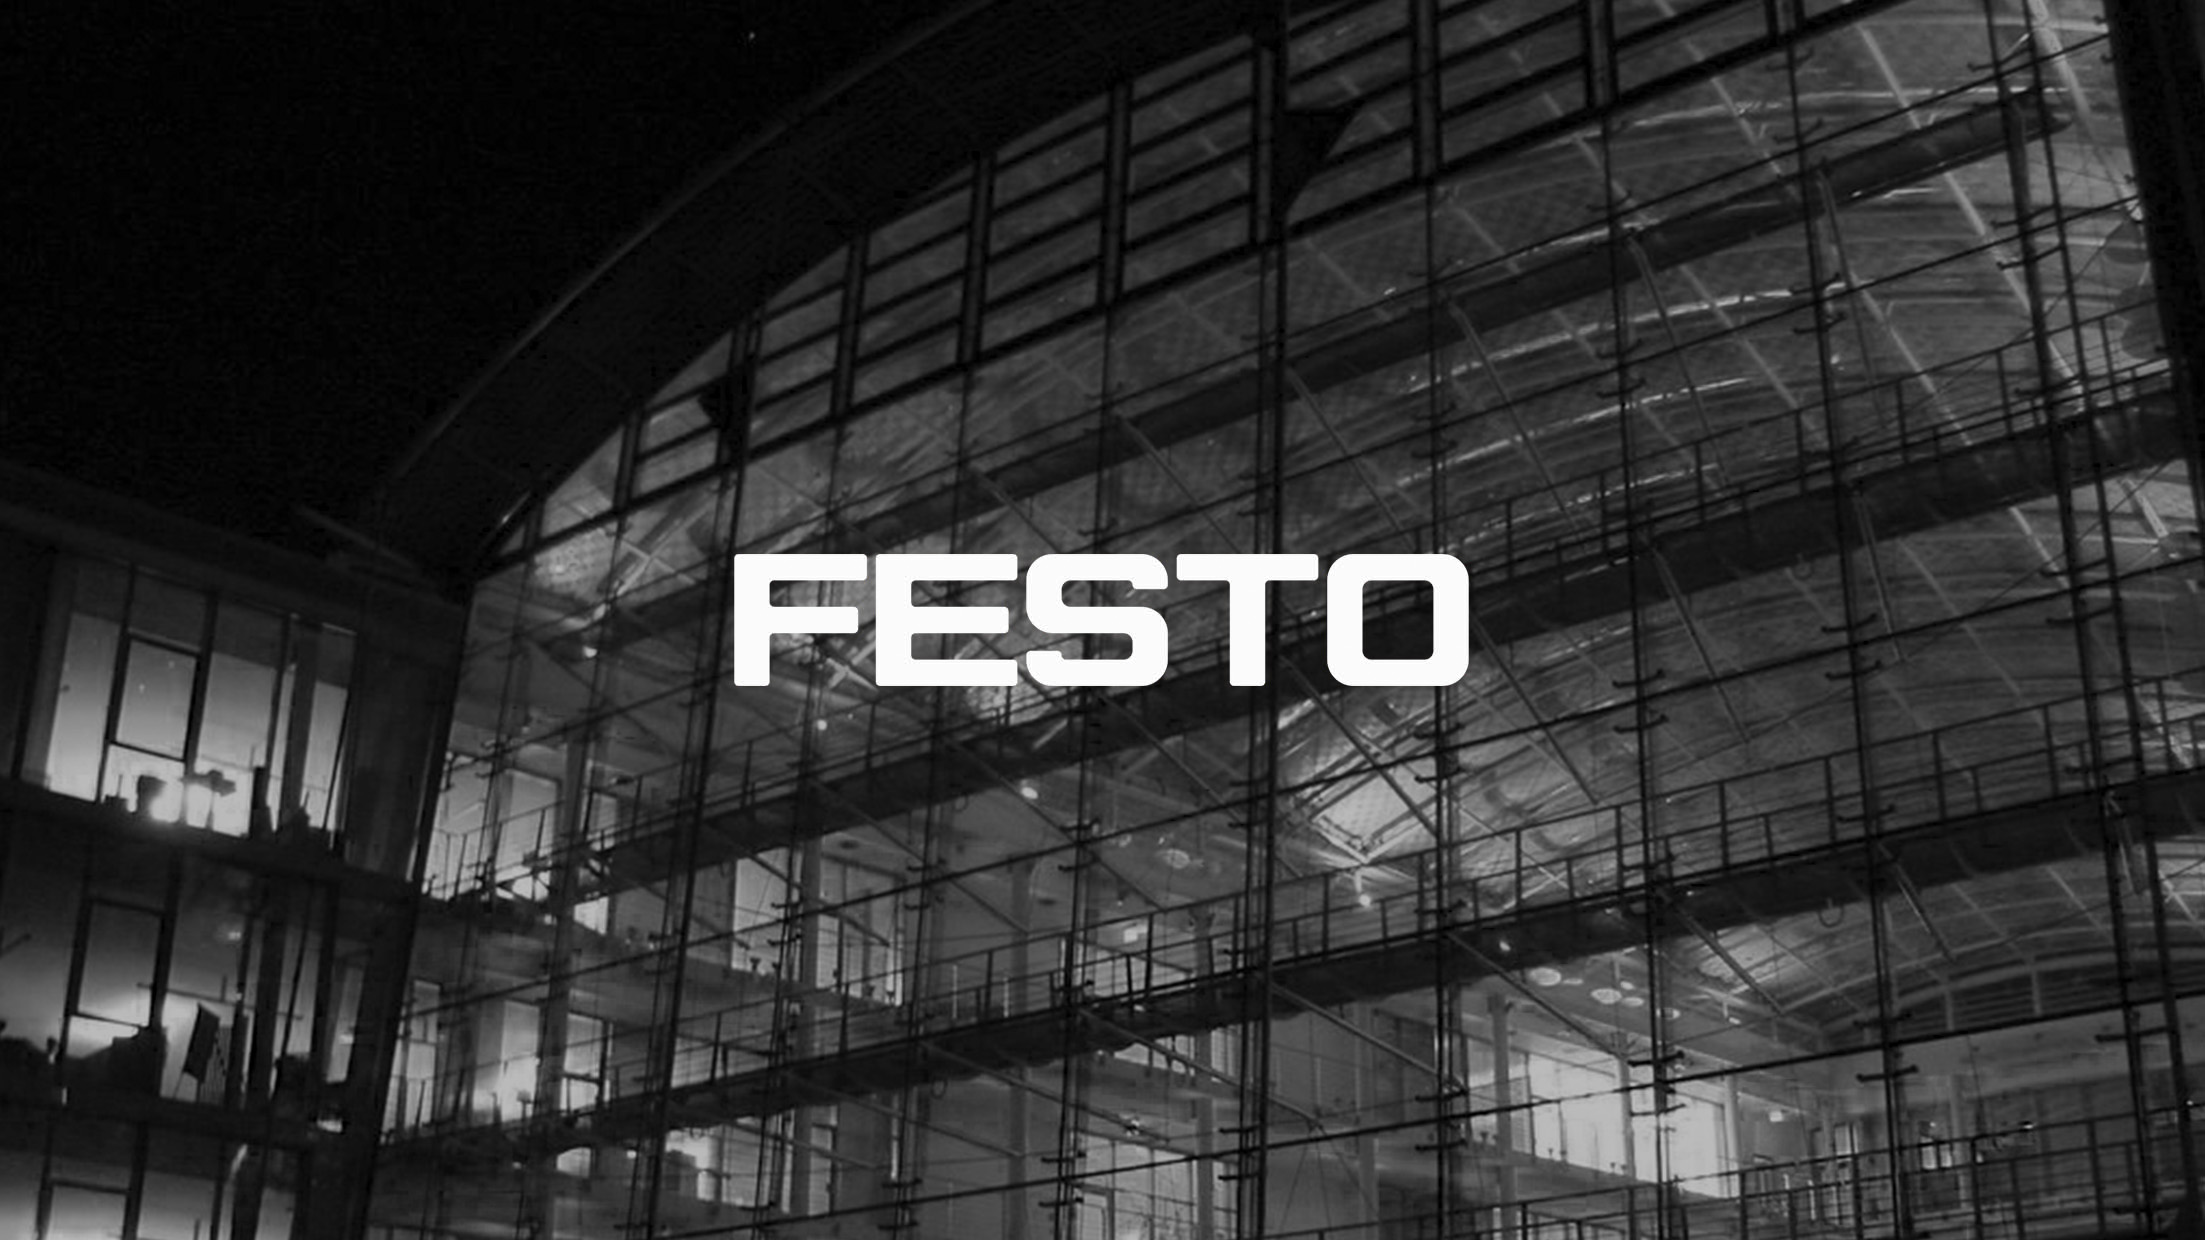 FESTO Design / Designed by Ben Biazar